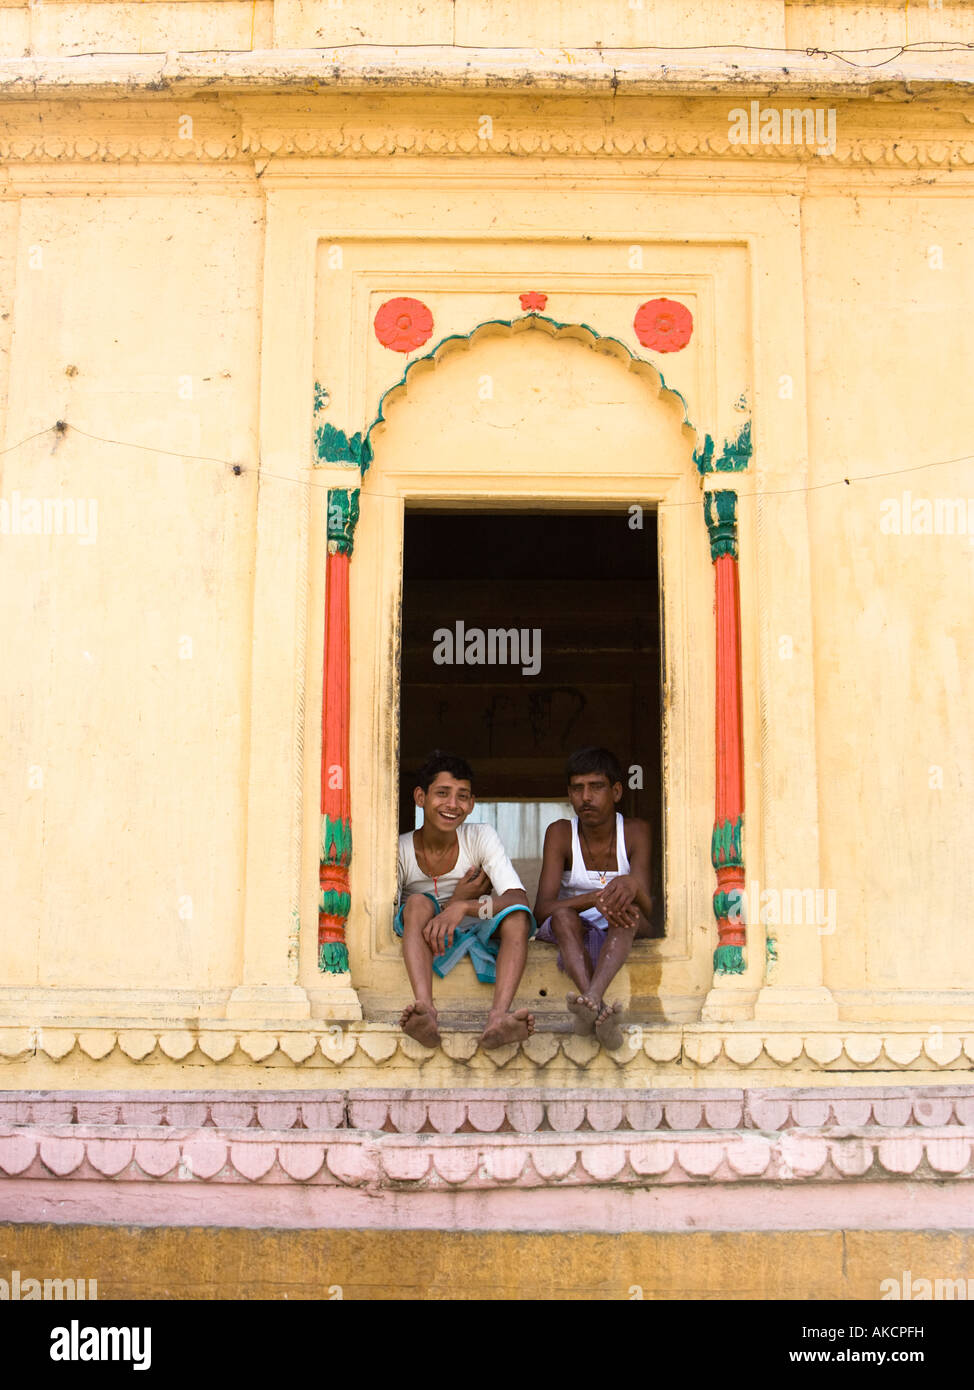 Portrait of two young men sitting in the window of a building in Varanasi Ghat on the banks of the Ganges. Varanasi, - Stock Image